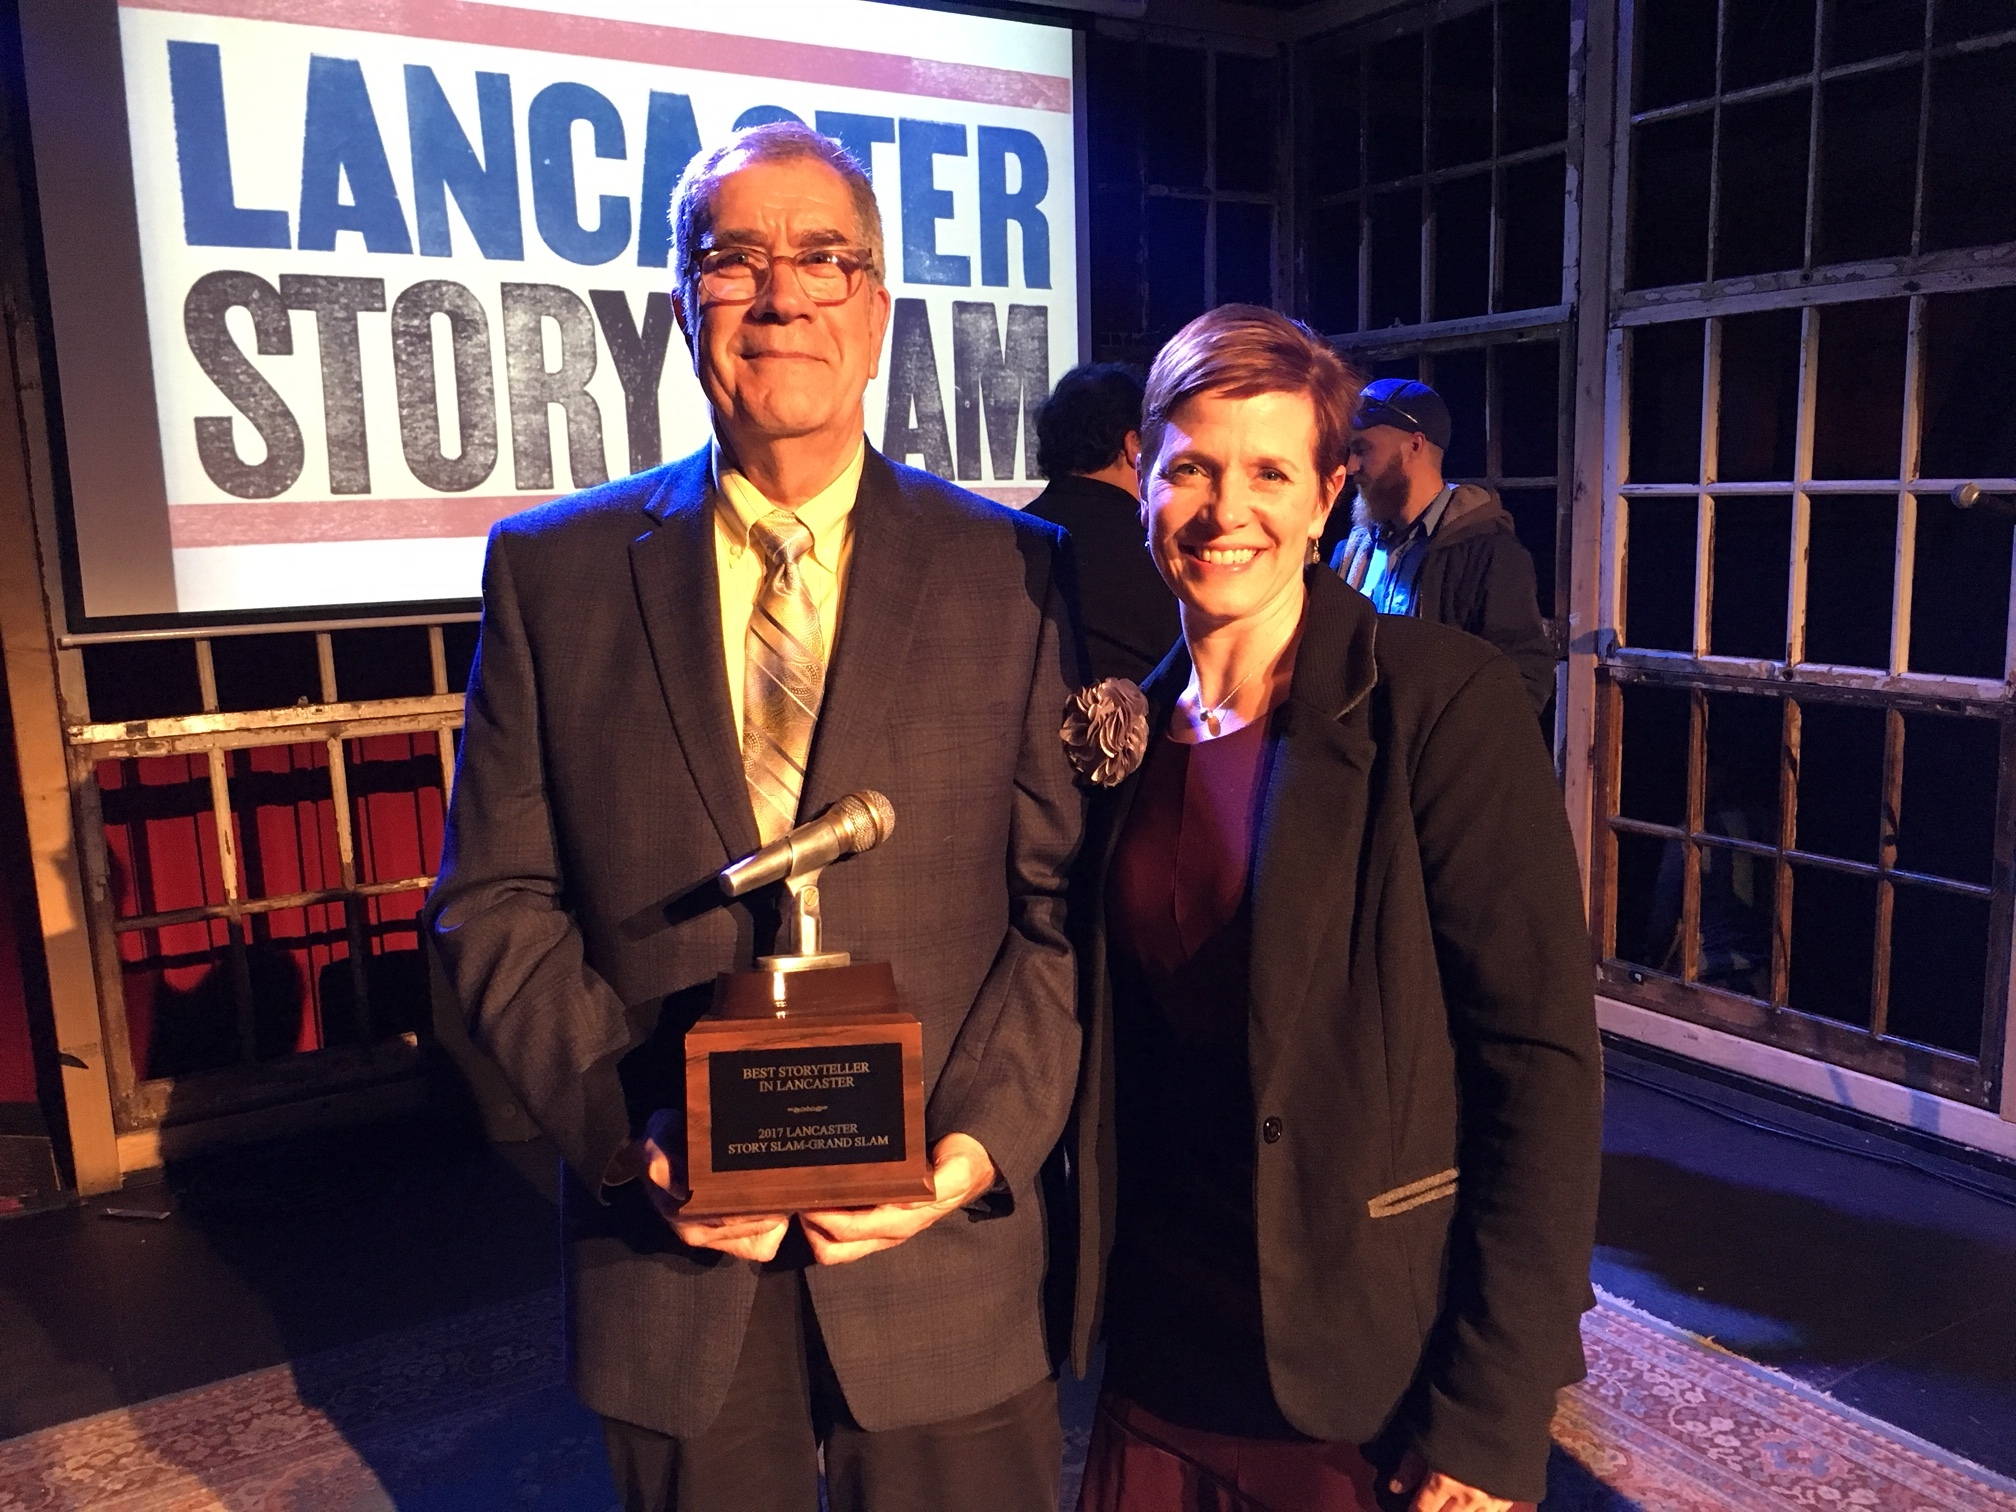 Grand Slam Champion Tony Crocamo poses with Lancaster Story Slam Producer Carla Wilson.